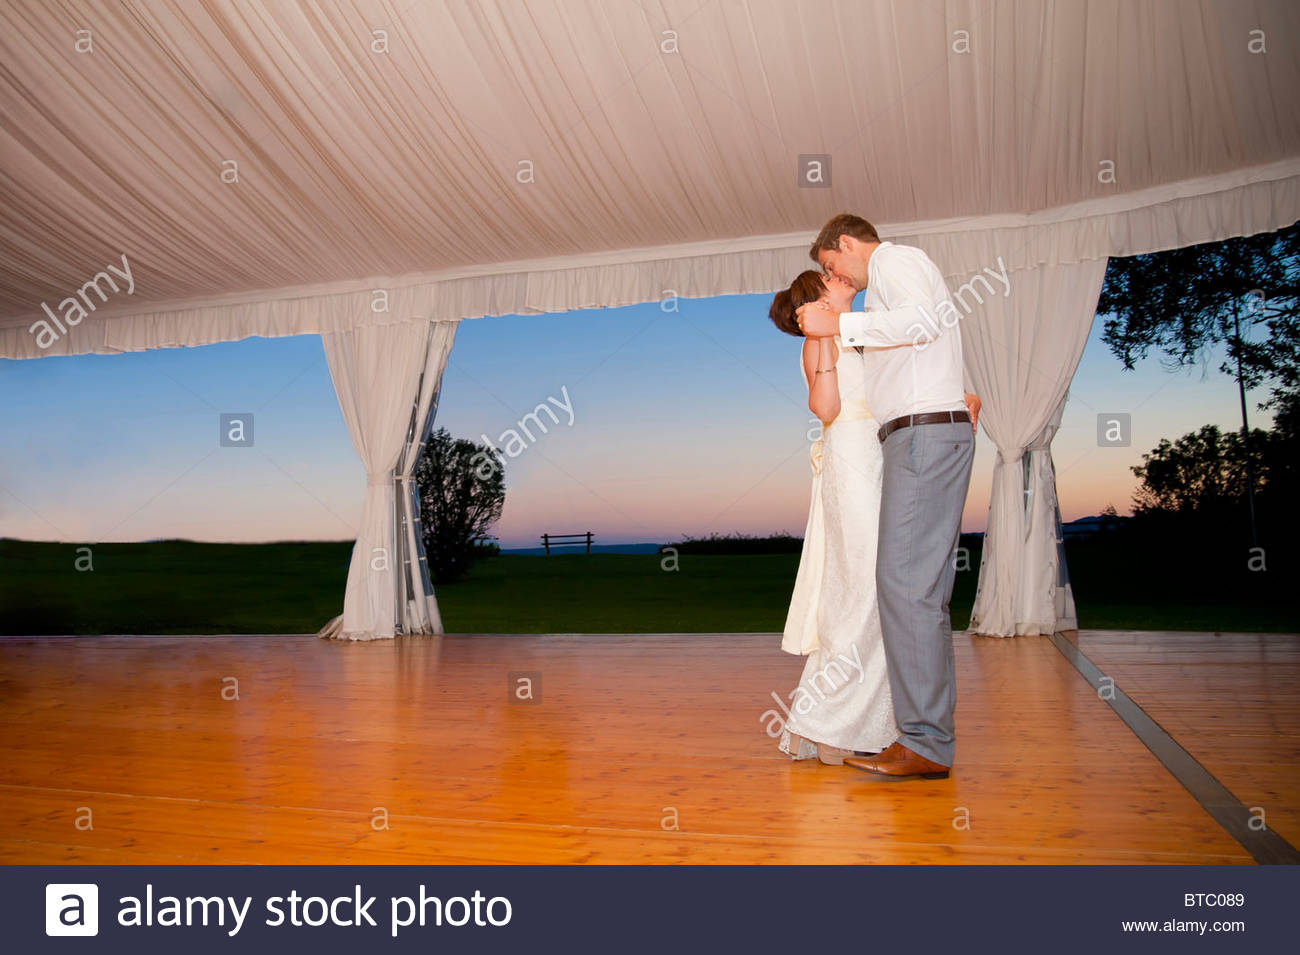 Newlyweds at their first dance - Stock Image